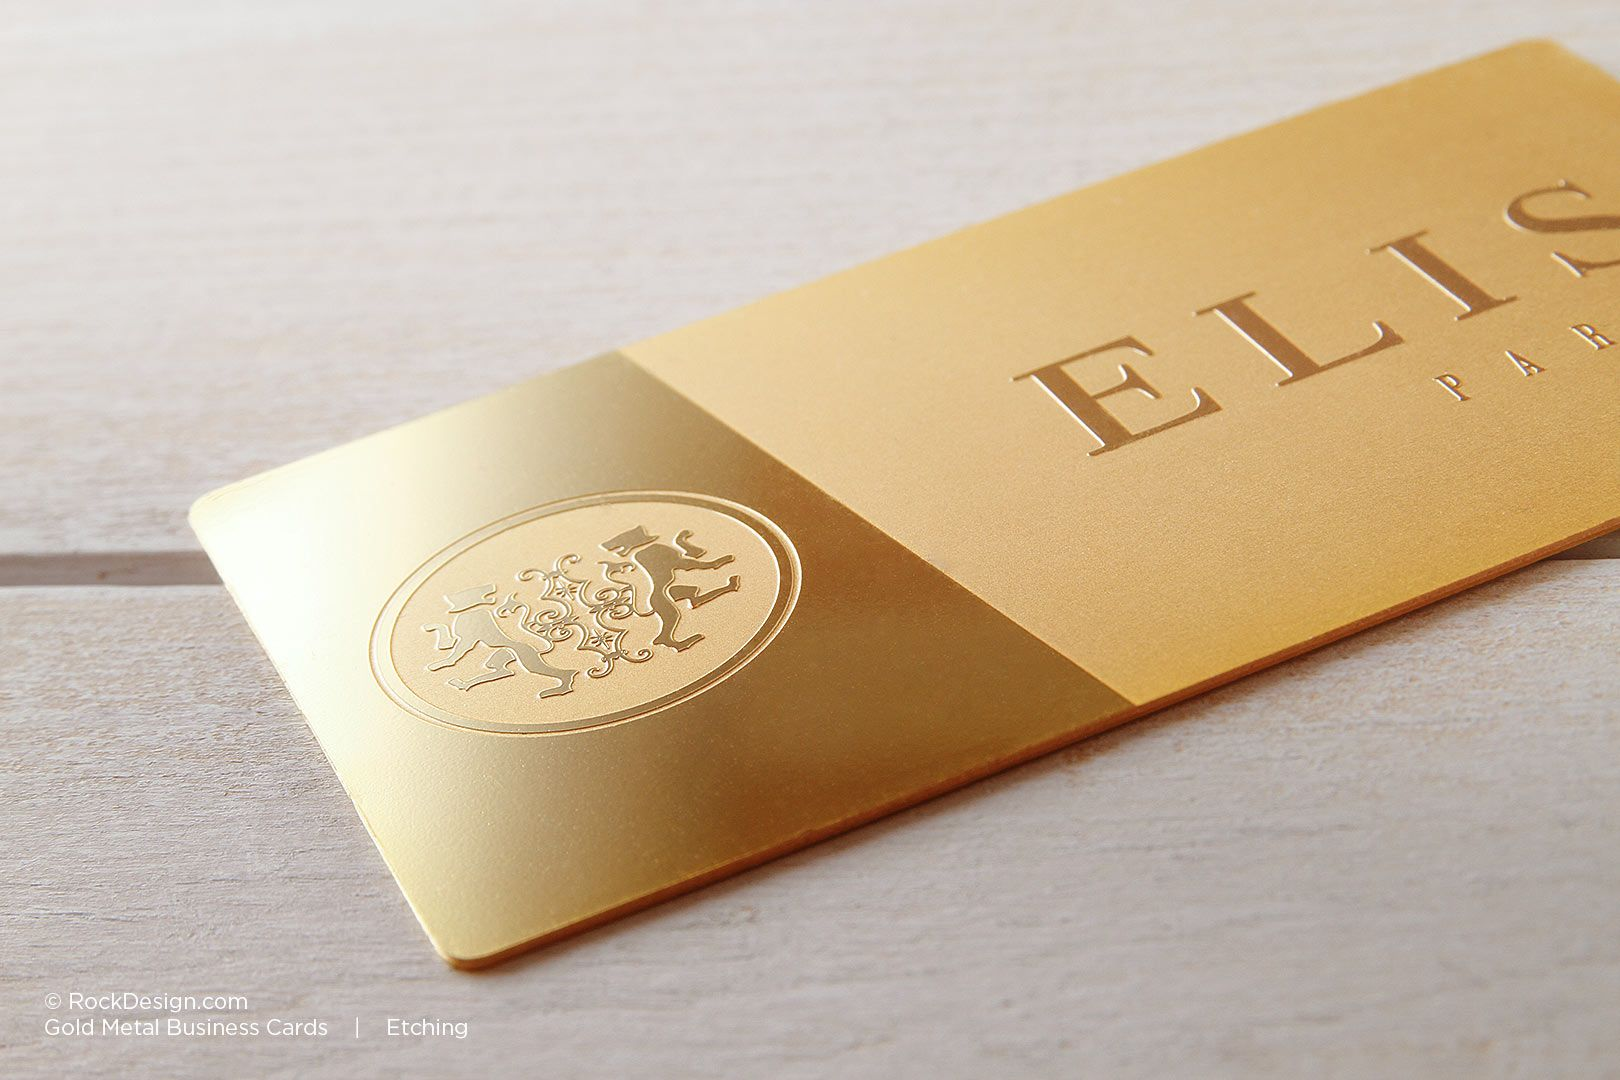 Gold Metal Business Cards | RockDesign Luxury Business Card Printing ...